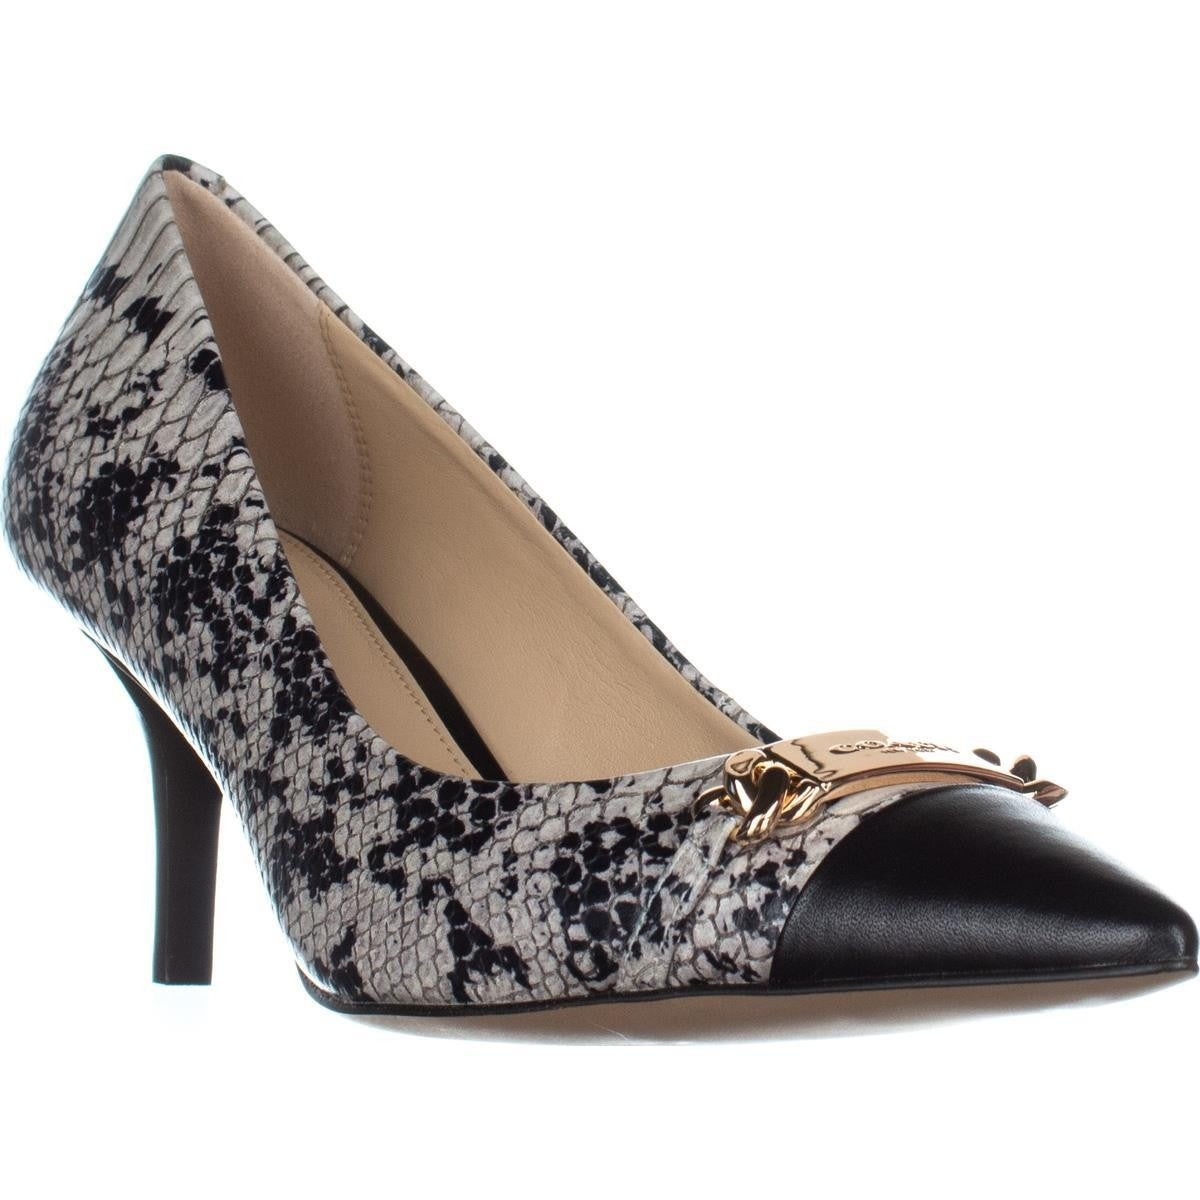 09032c11fa2 Shop Coach Womens Bowery Pointed Toe Classic Pumps - Free Shipping Today -  Overstock - 14527279